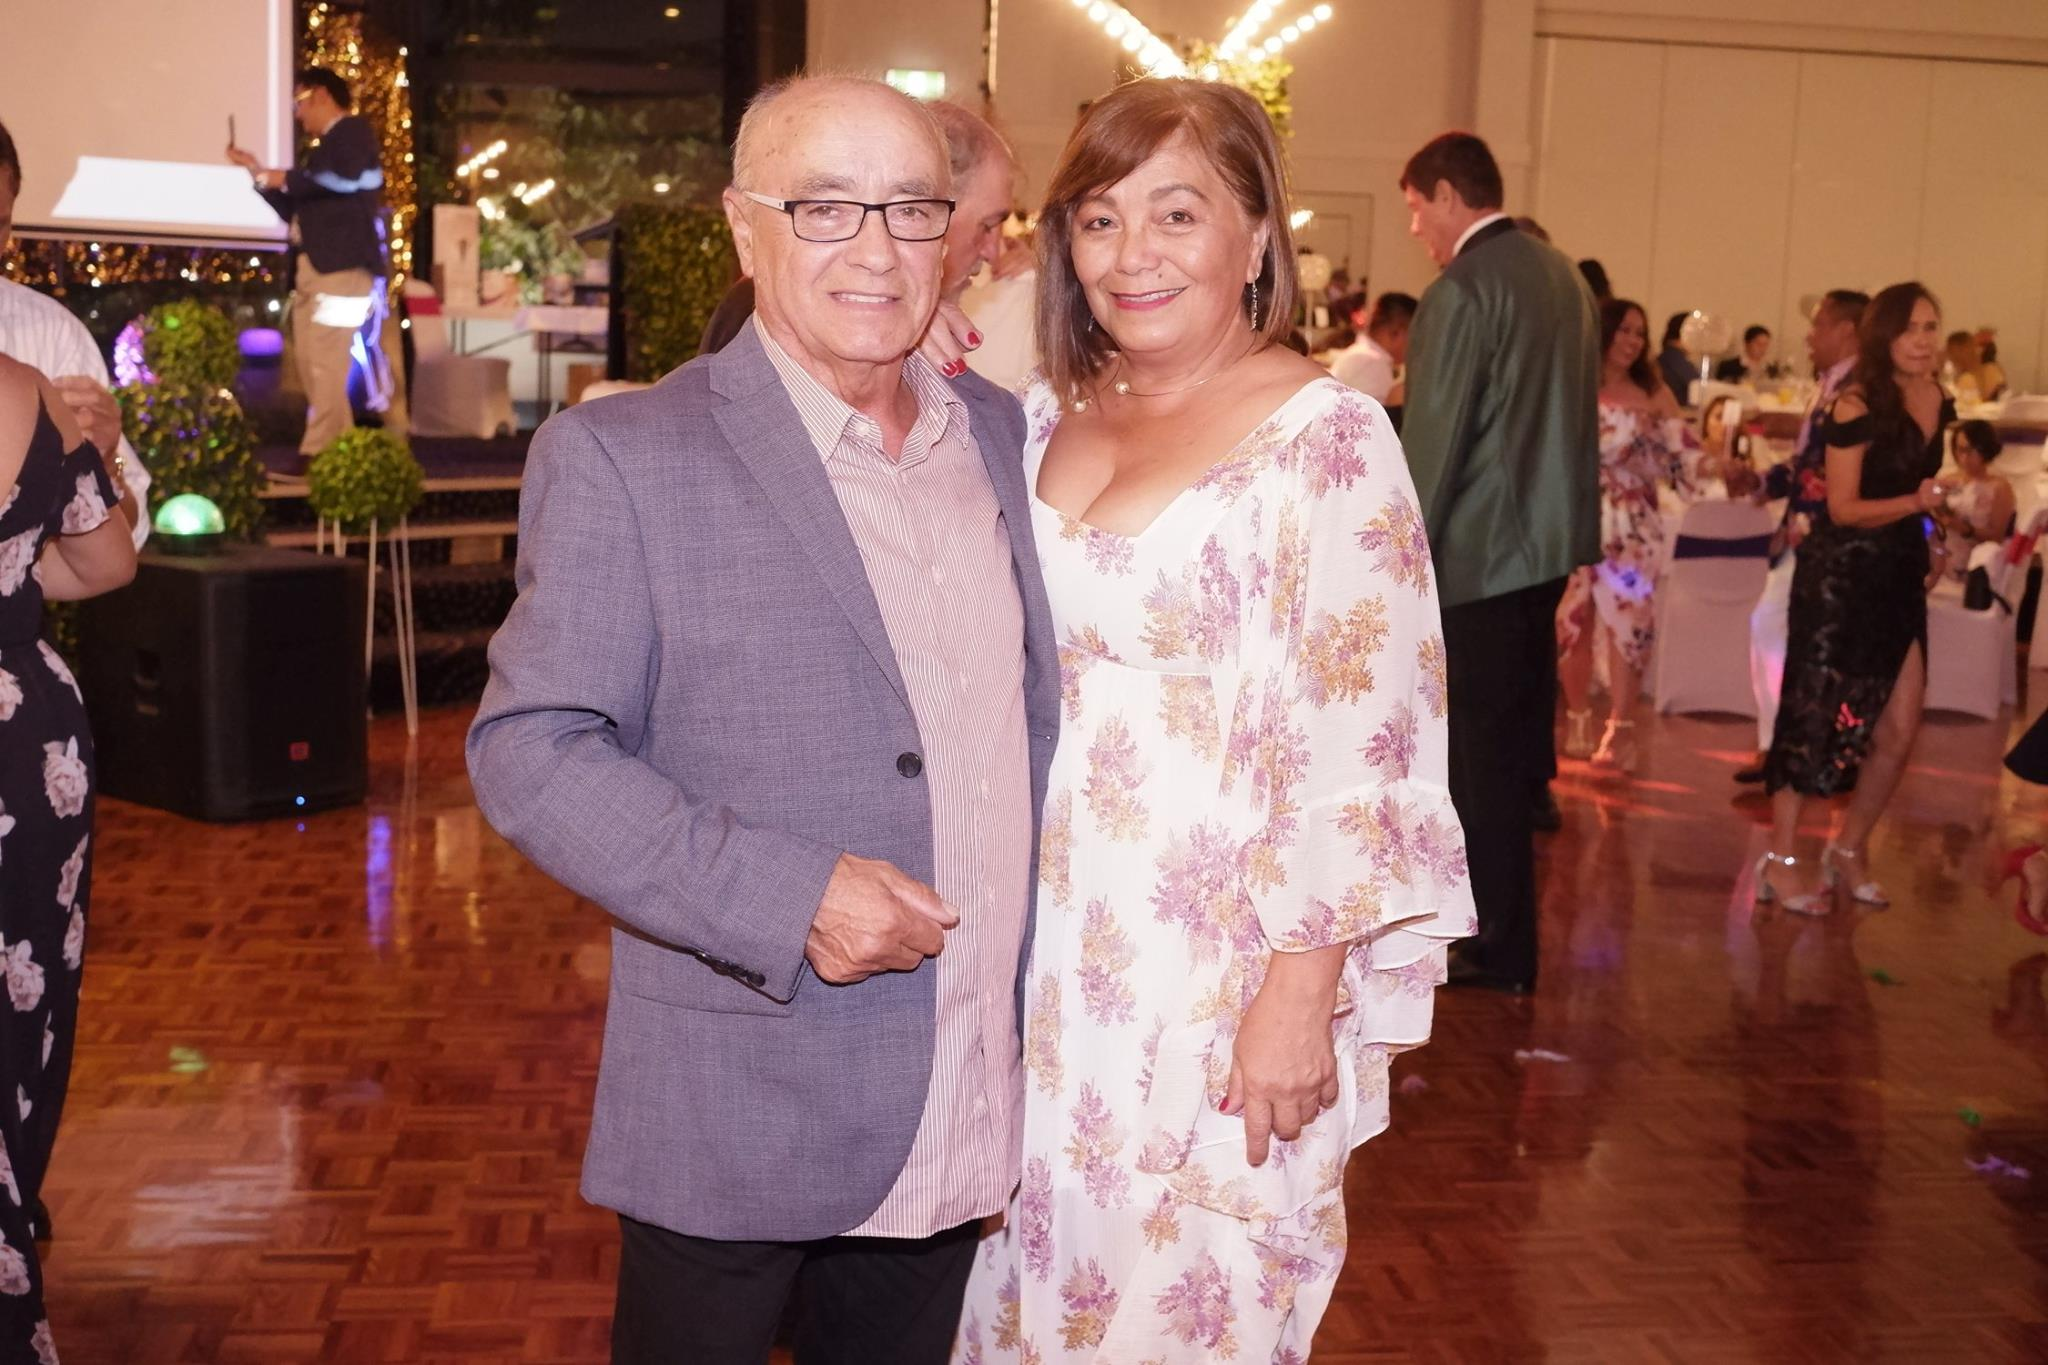 smad-melbourne-charity-philippines-davao-palawan-rio-2019-dinner-dance-melbourne-australia-chrity-ball.jpg